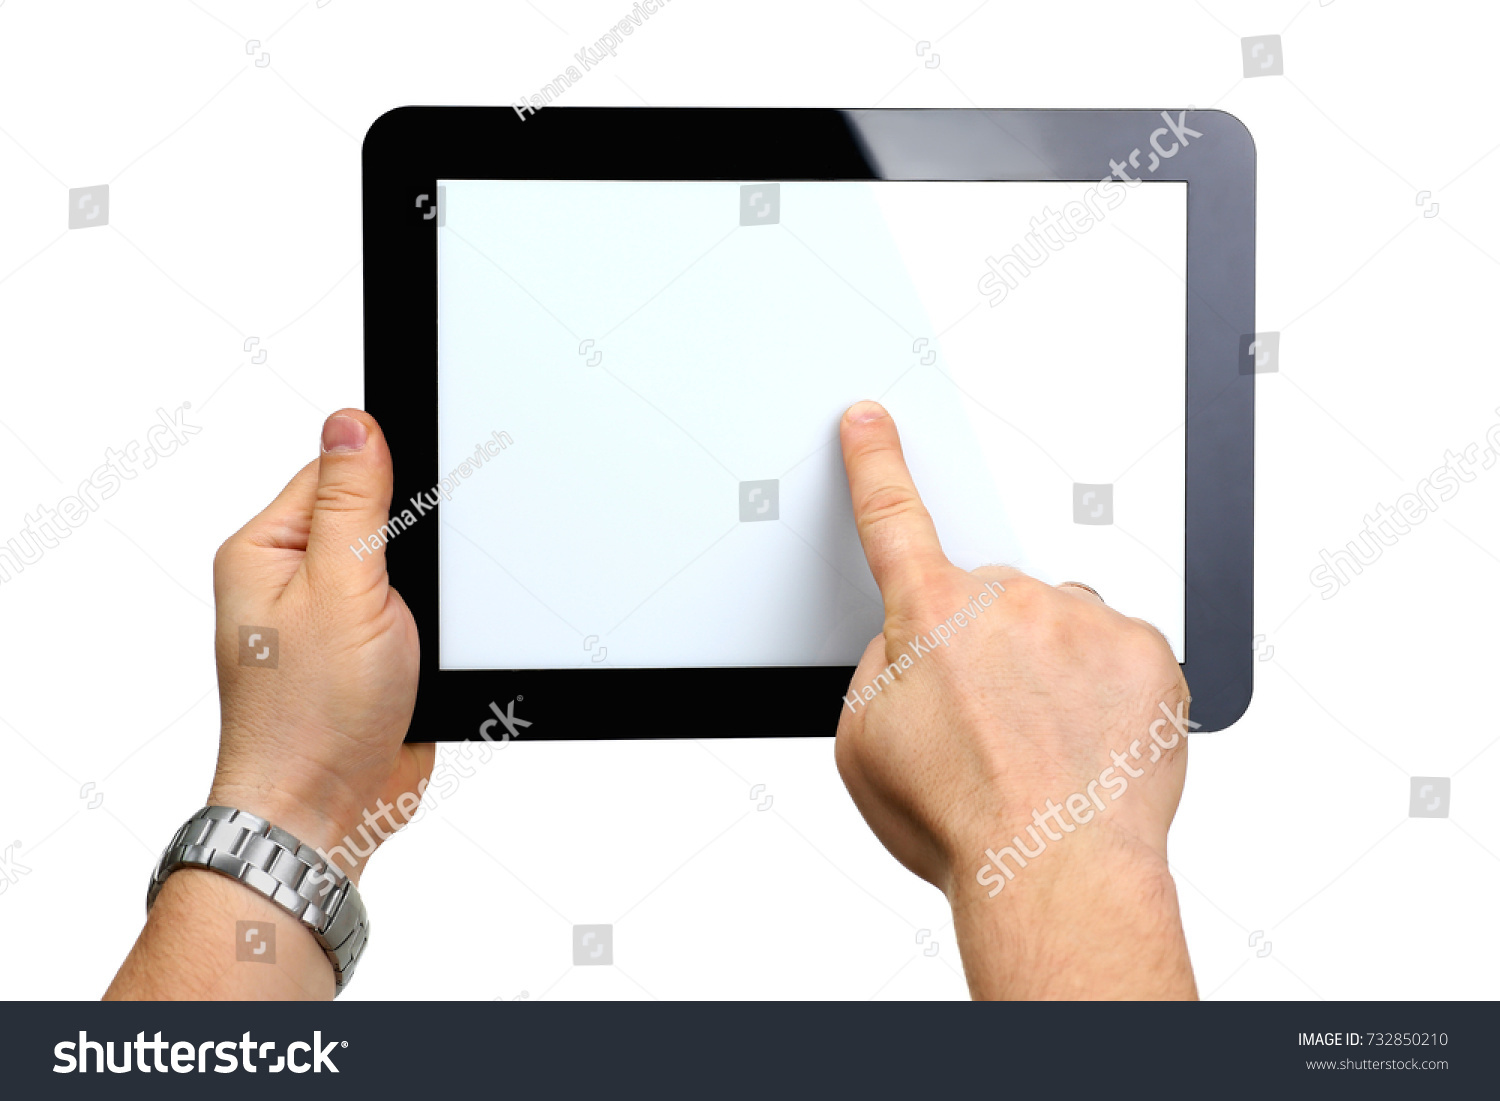 Man hoding black tablet frame in hand isolated on white closeup. Can insert an image image your text for the concept or project development of mobile applications, their advertising for mobile devices #732850210